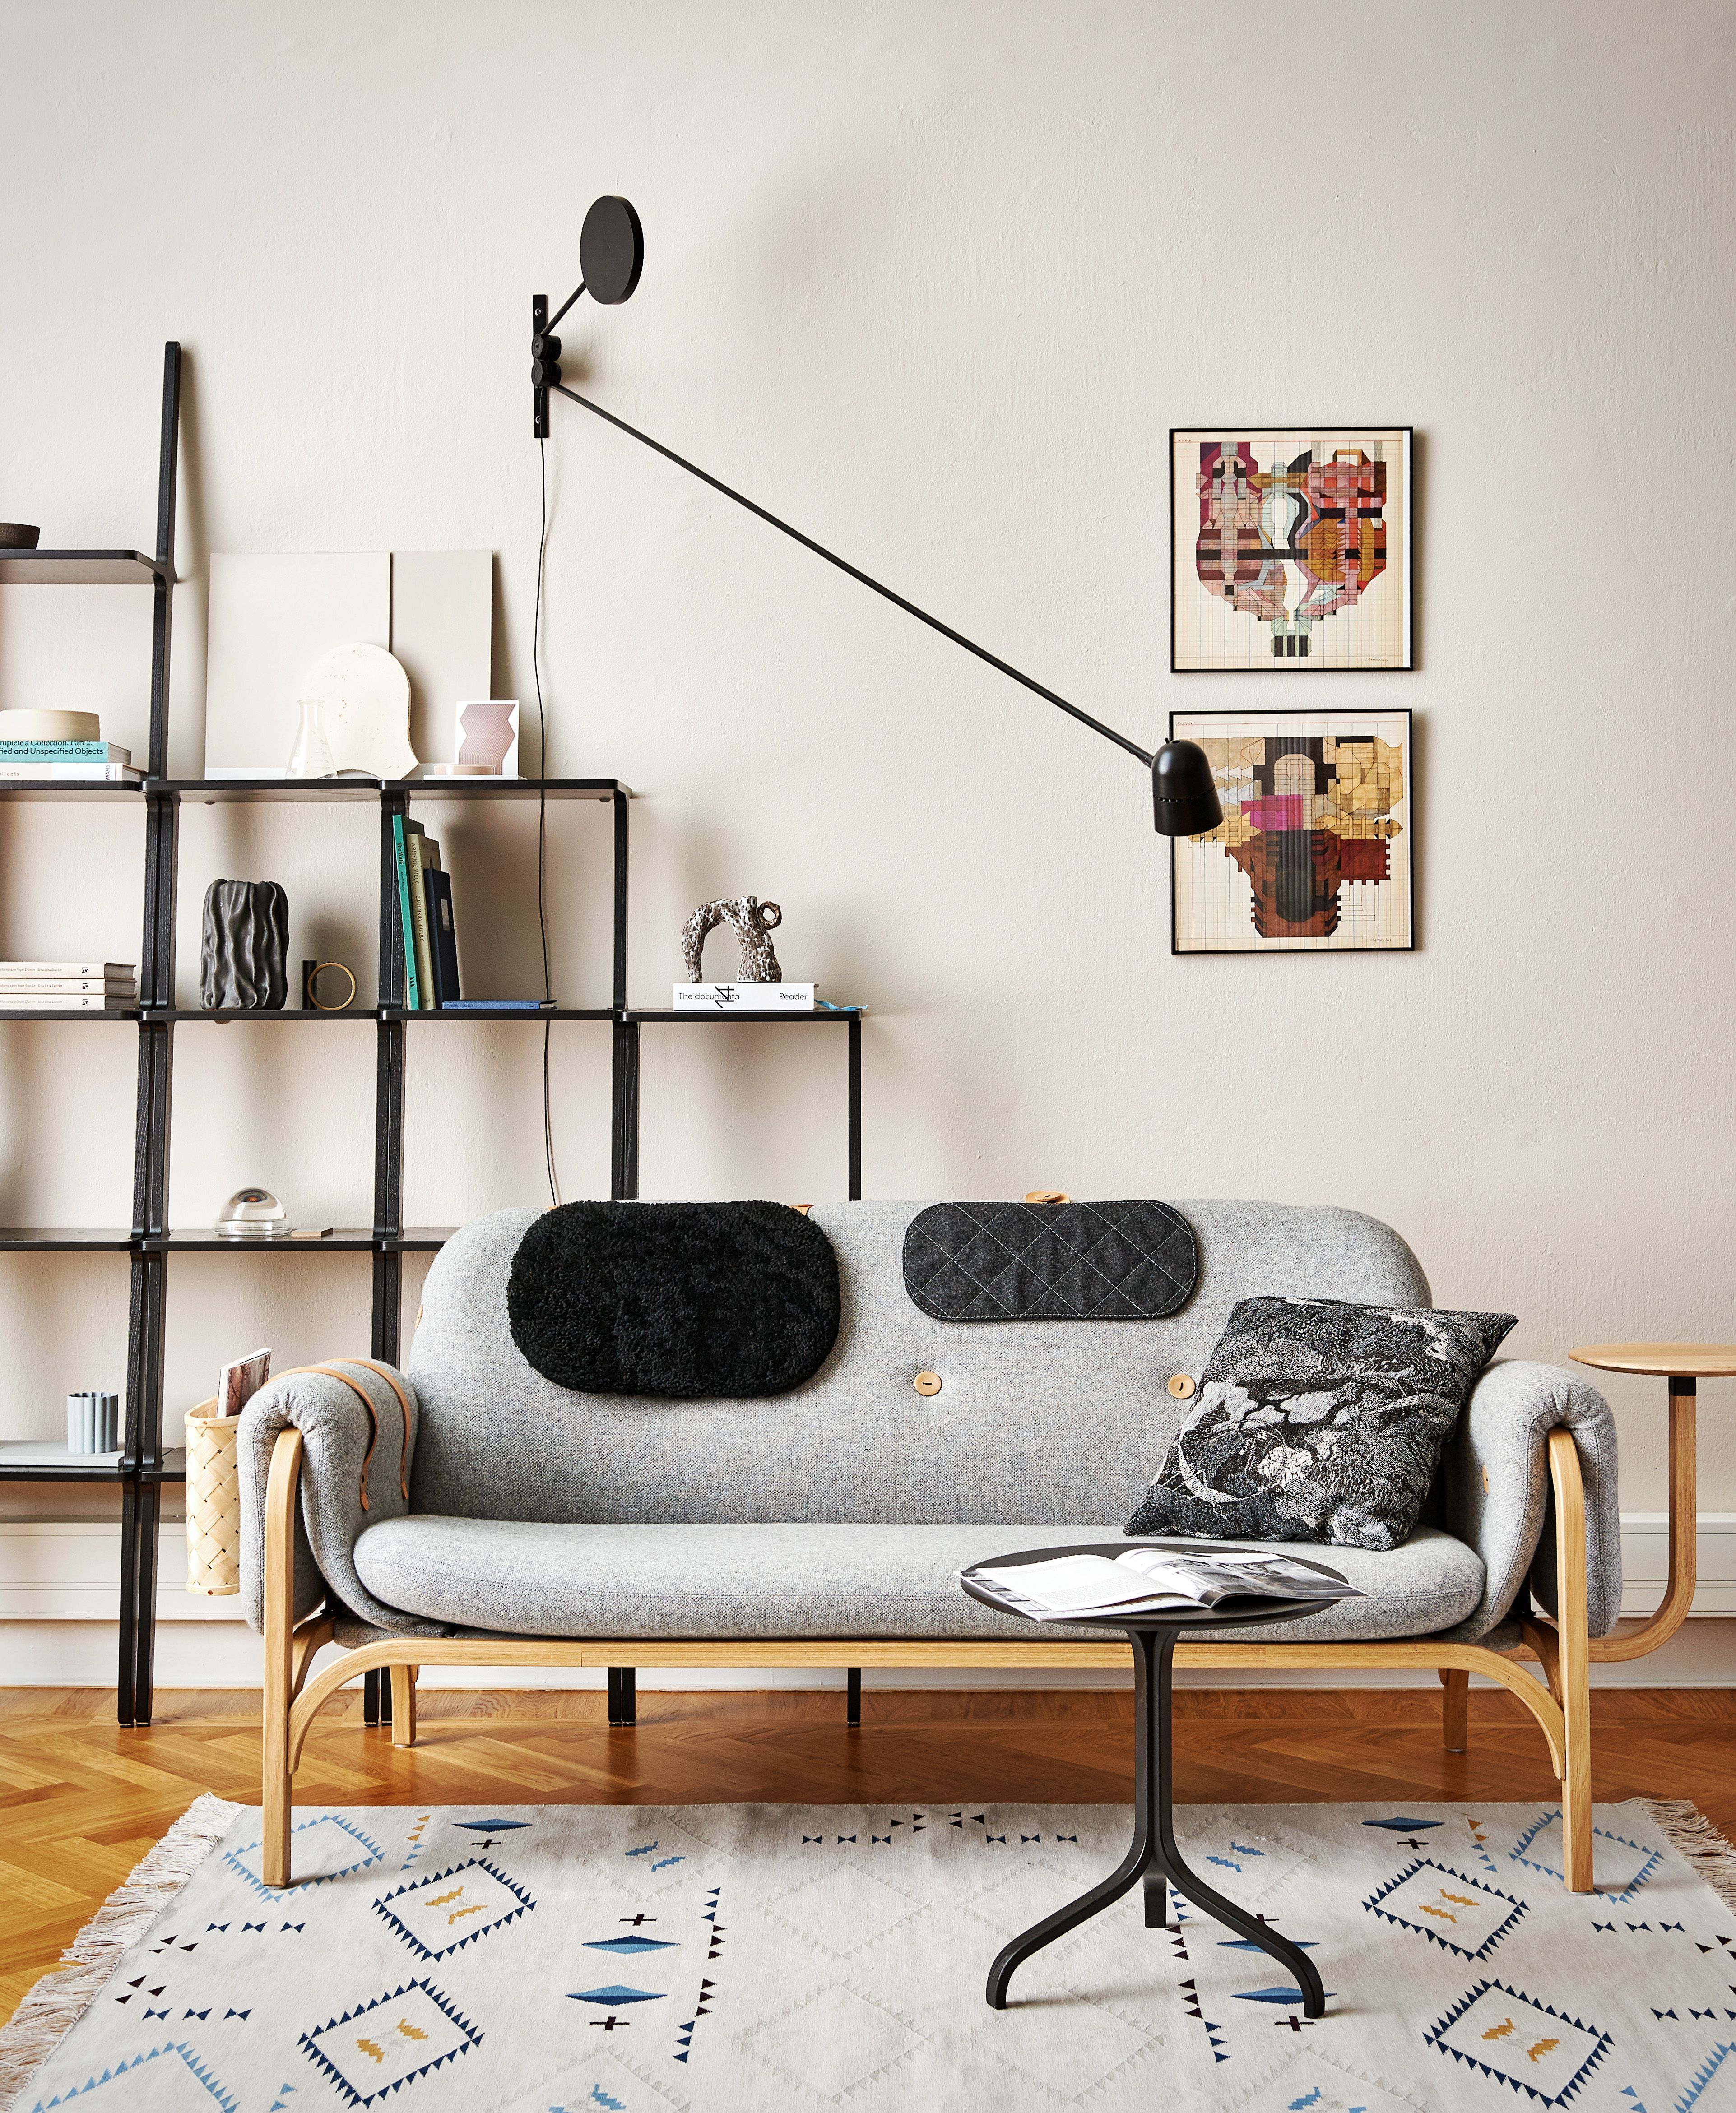 For Button Sofa Front Has Found Inspiration In The Swedese Archives In Order To Express The Scandinavian Heritage That Is So Mobelideer Mobeldesign Interiorer